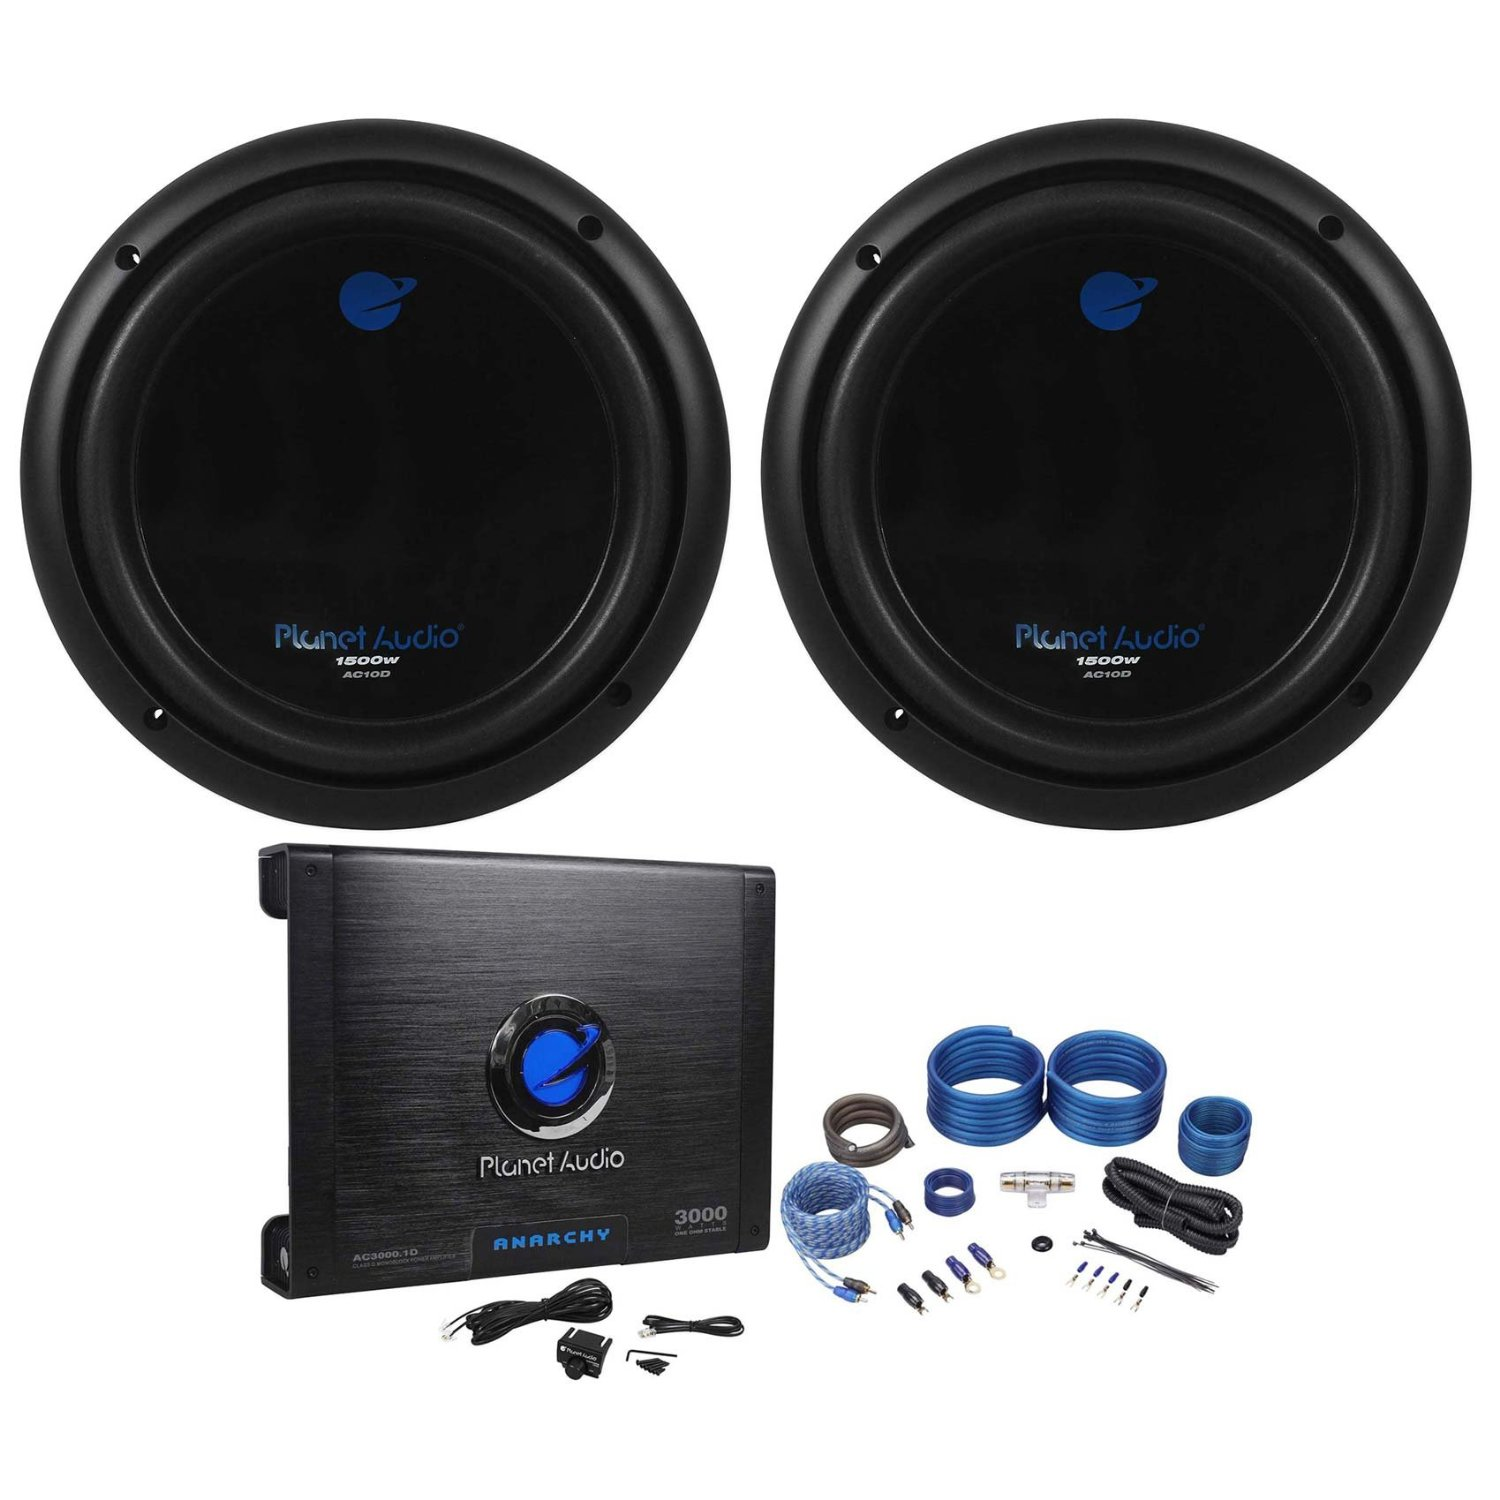 """Package: (2) Planet Audio AC10D 10"""" Dual 4-OHM Car Subwoofers Totaling 3000 Watt + Planet Audio Anarchy AC3000.1D 3000 Watt Class D Mono Car Amplifier 1 Ohm Stable With Remote + Rockville RWK41 4 Gauge 2 Channel Complete Wire Kit With RCA Cables"""